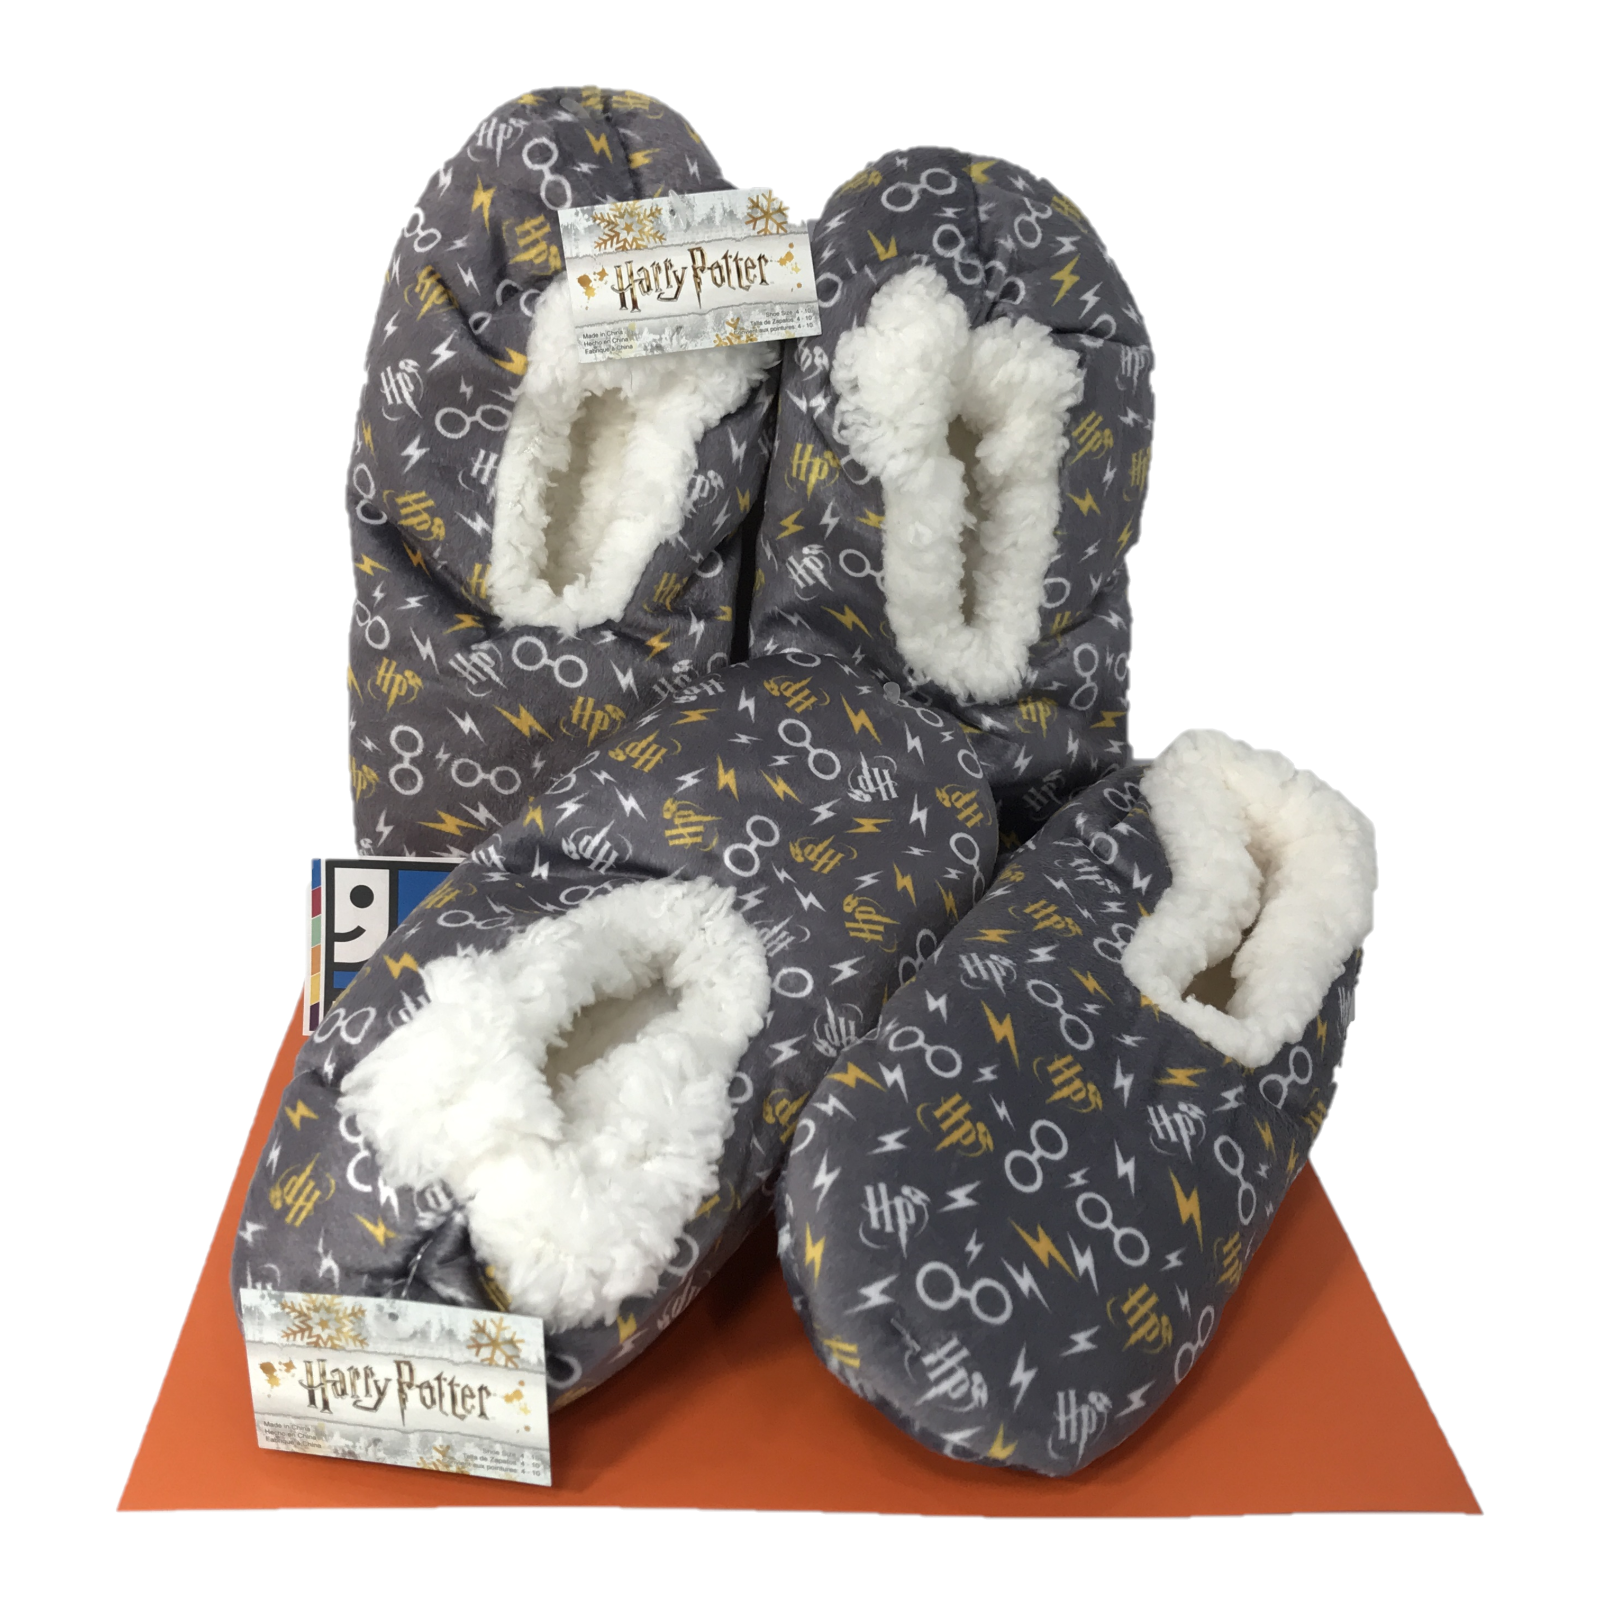 Harry Potter Slippers - Lot of 2 Pairs - New Fuzzy Bed Grip